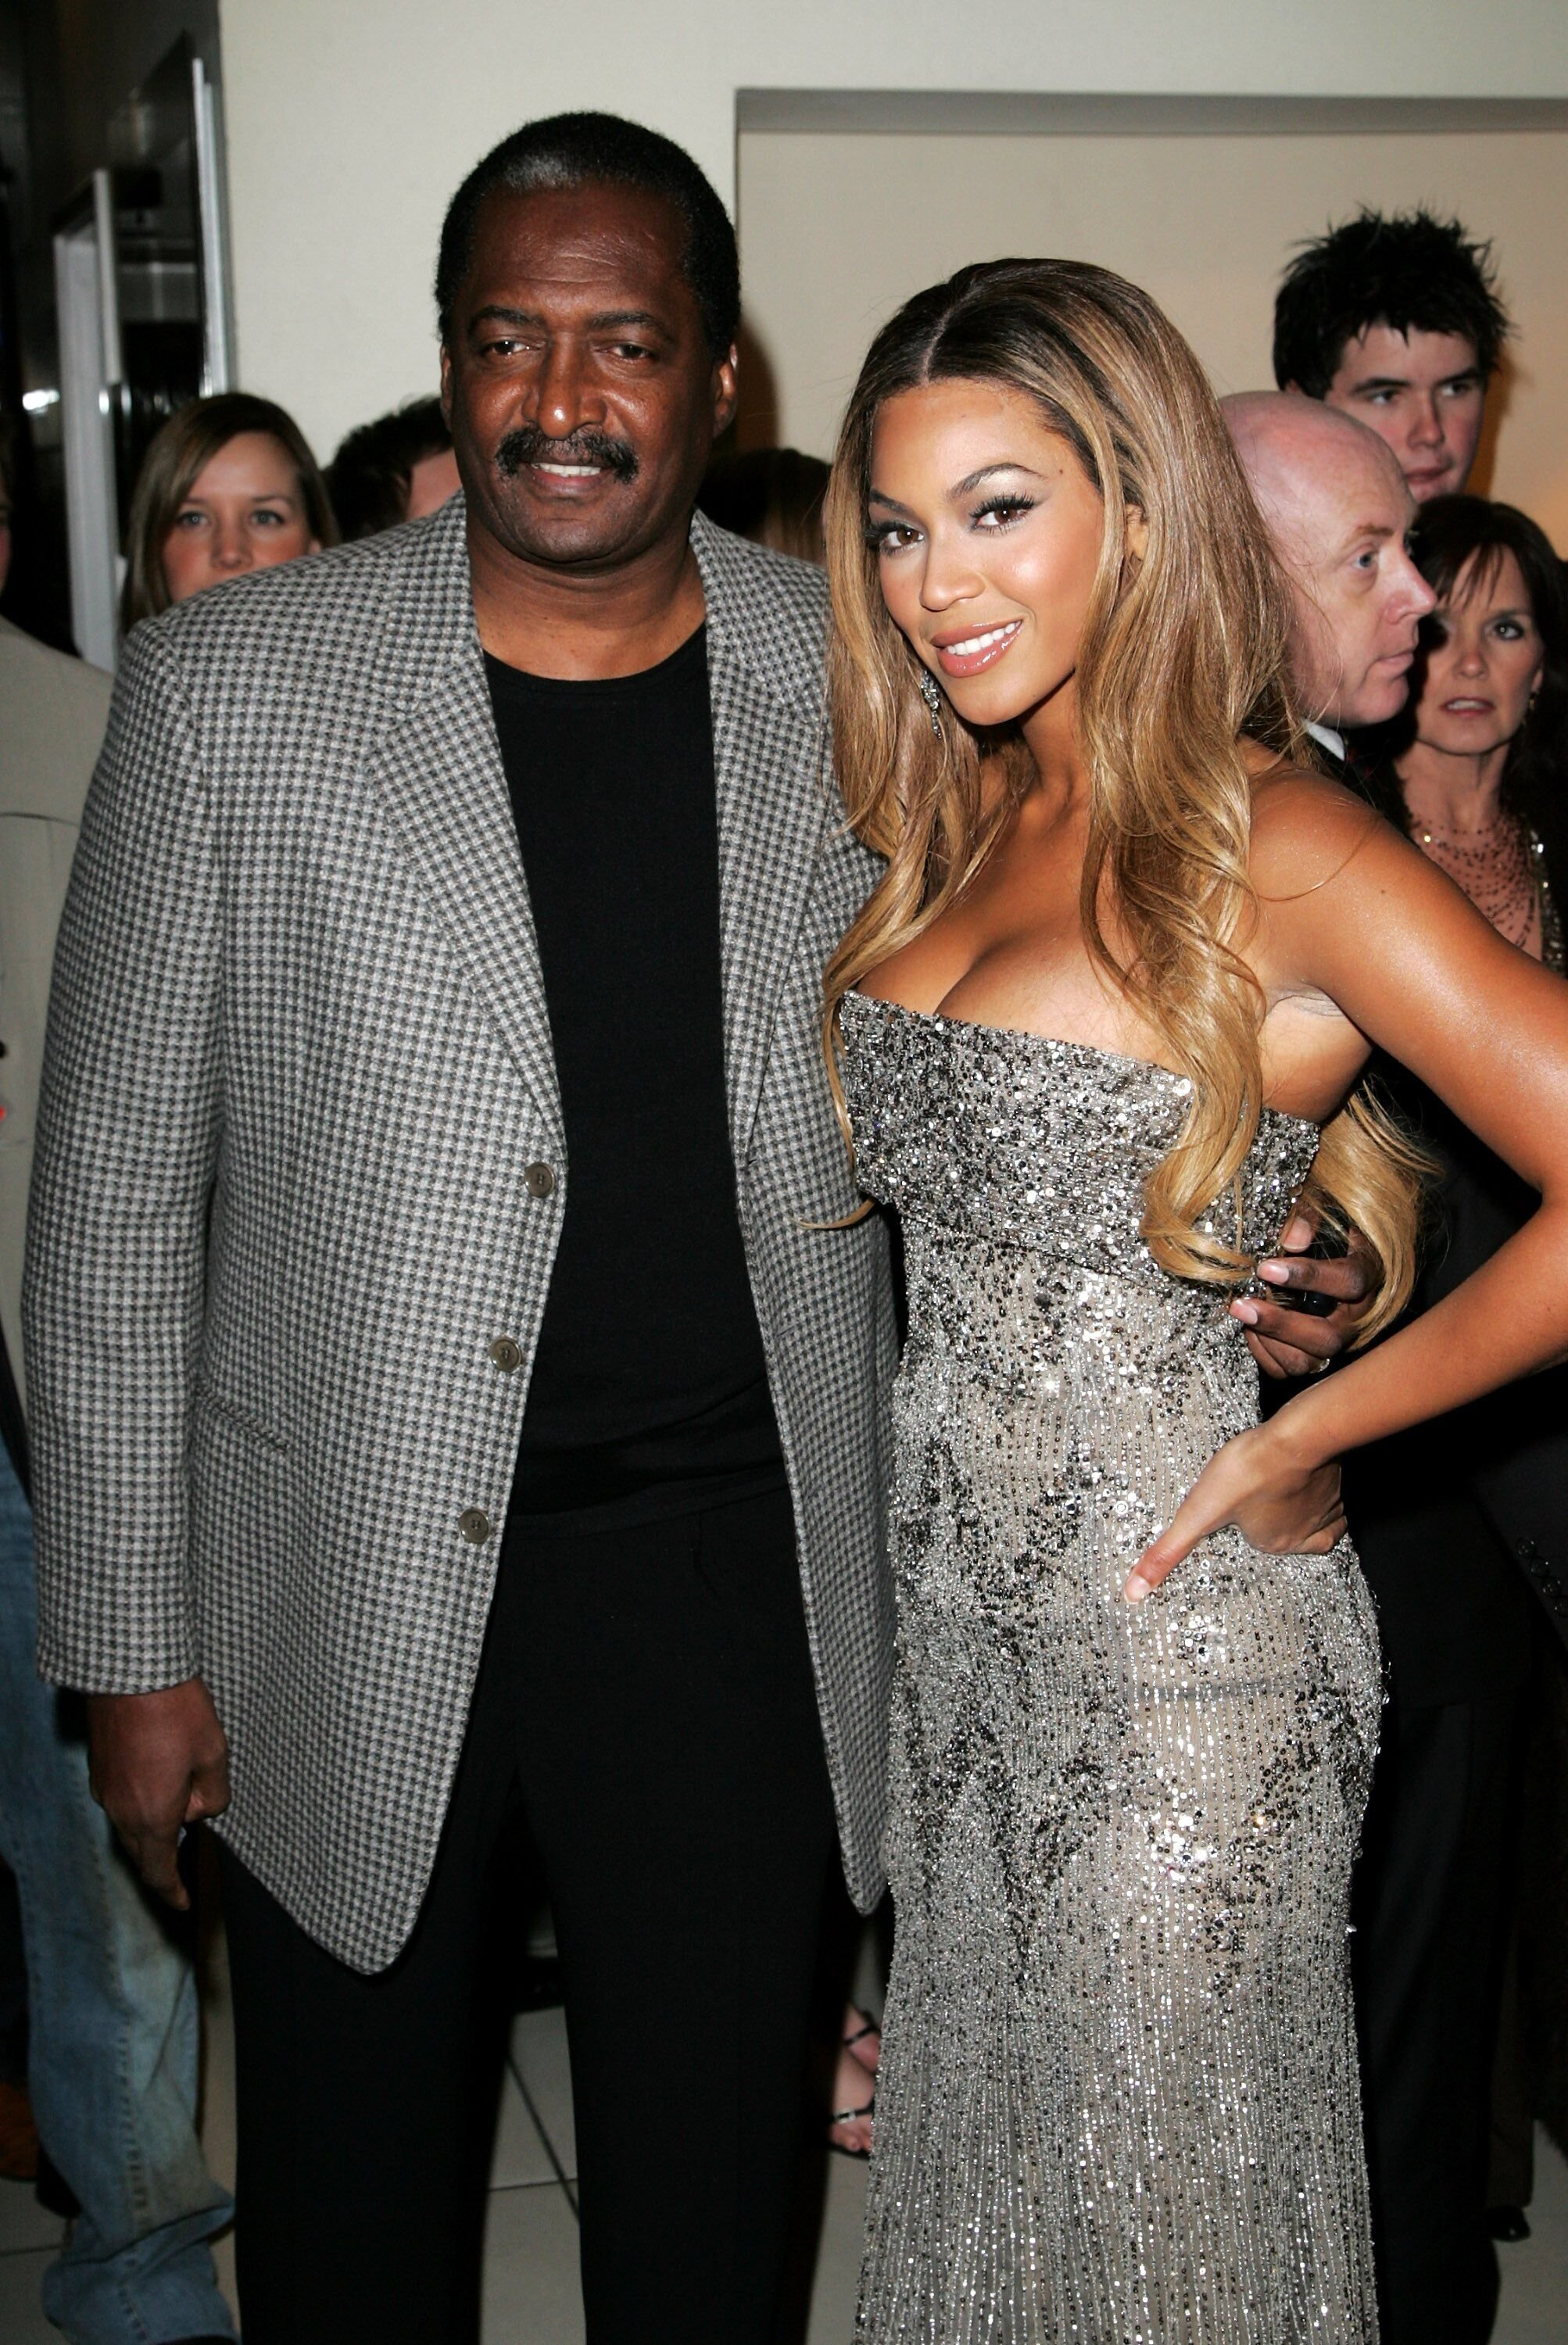 Mathew Knowles and his daughter Beyoncé/ Source: Getty Images